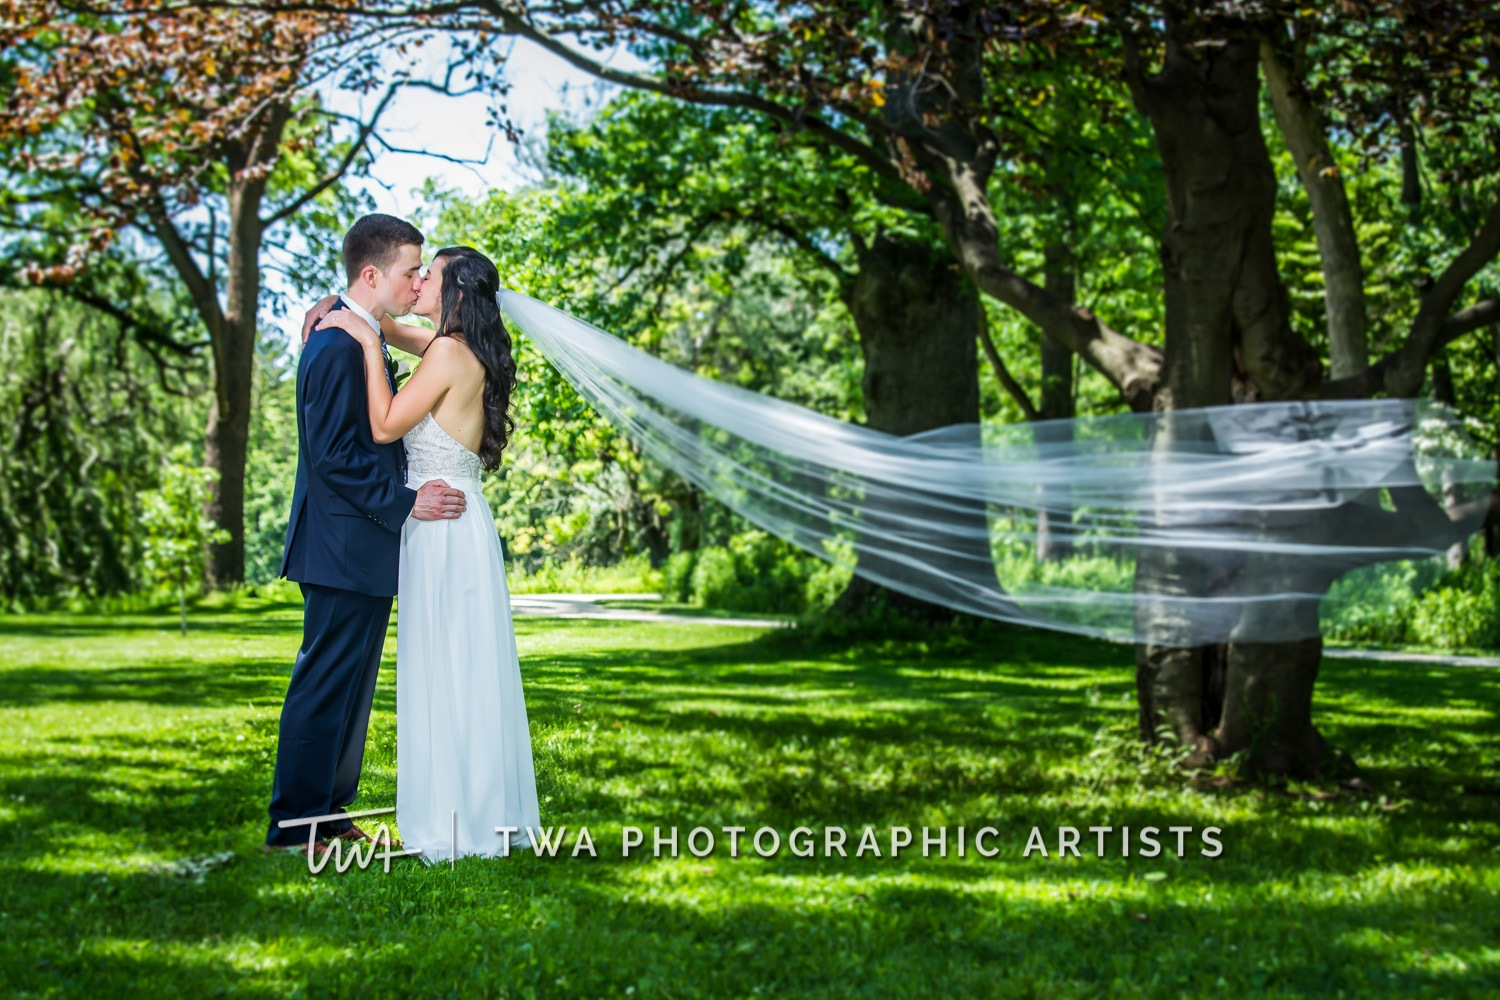 Chicago-Wedding-Photographer-TWA-Photographic-Artists-Private-Residence_Matar_Peters_SG-0097